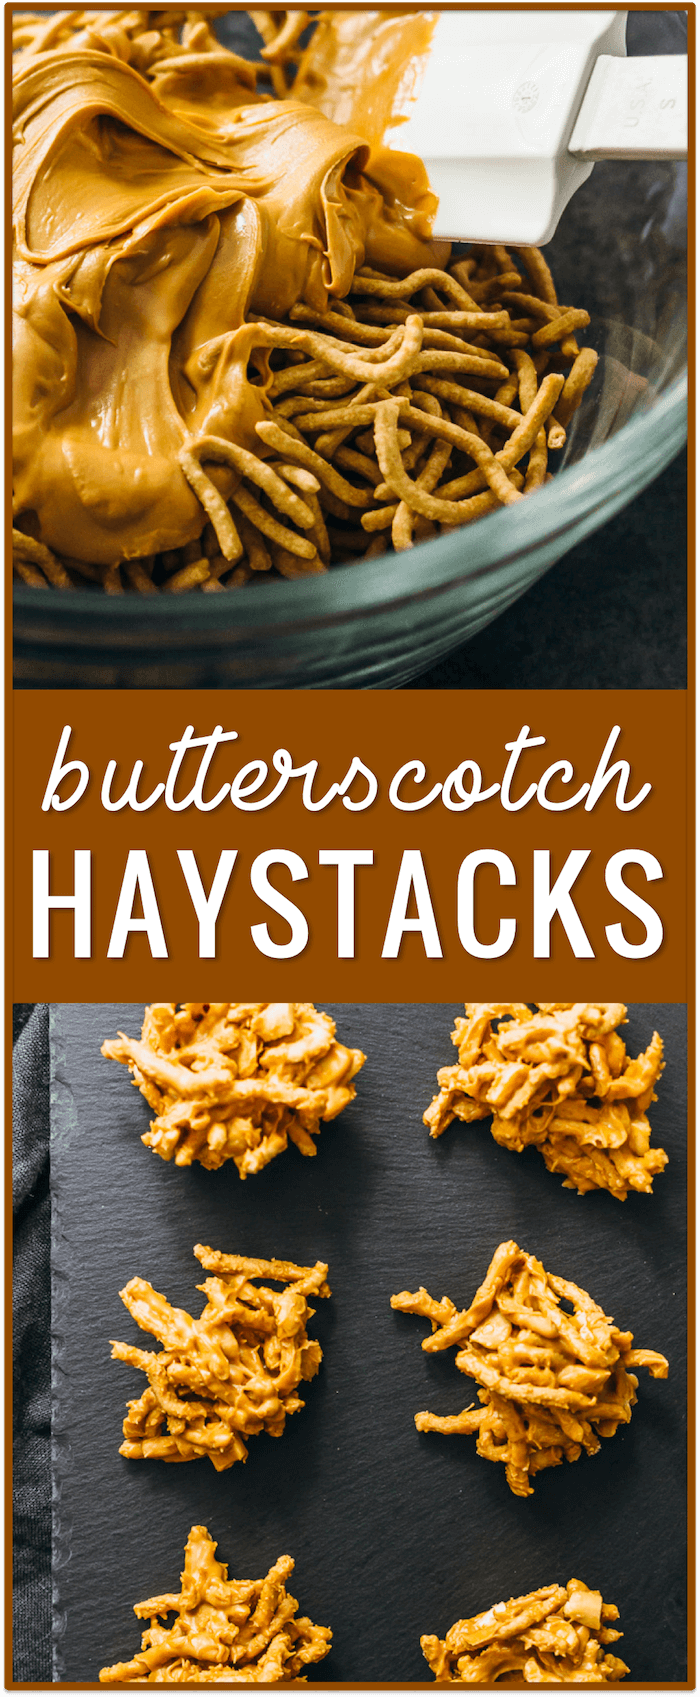 butterscotch haystacks with chow mein noodles, recipe, easy, dessert, marshmallows, peanut butter, christmas, pretzels, chocolate, no nuts, toll house, cookies